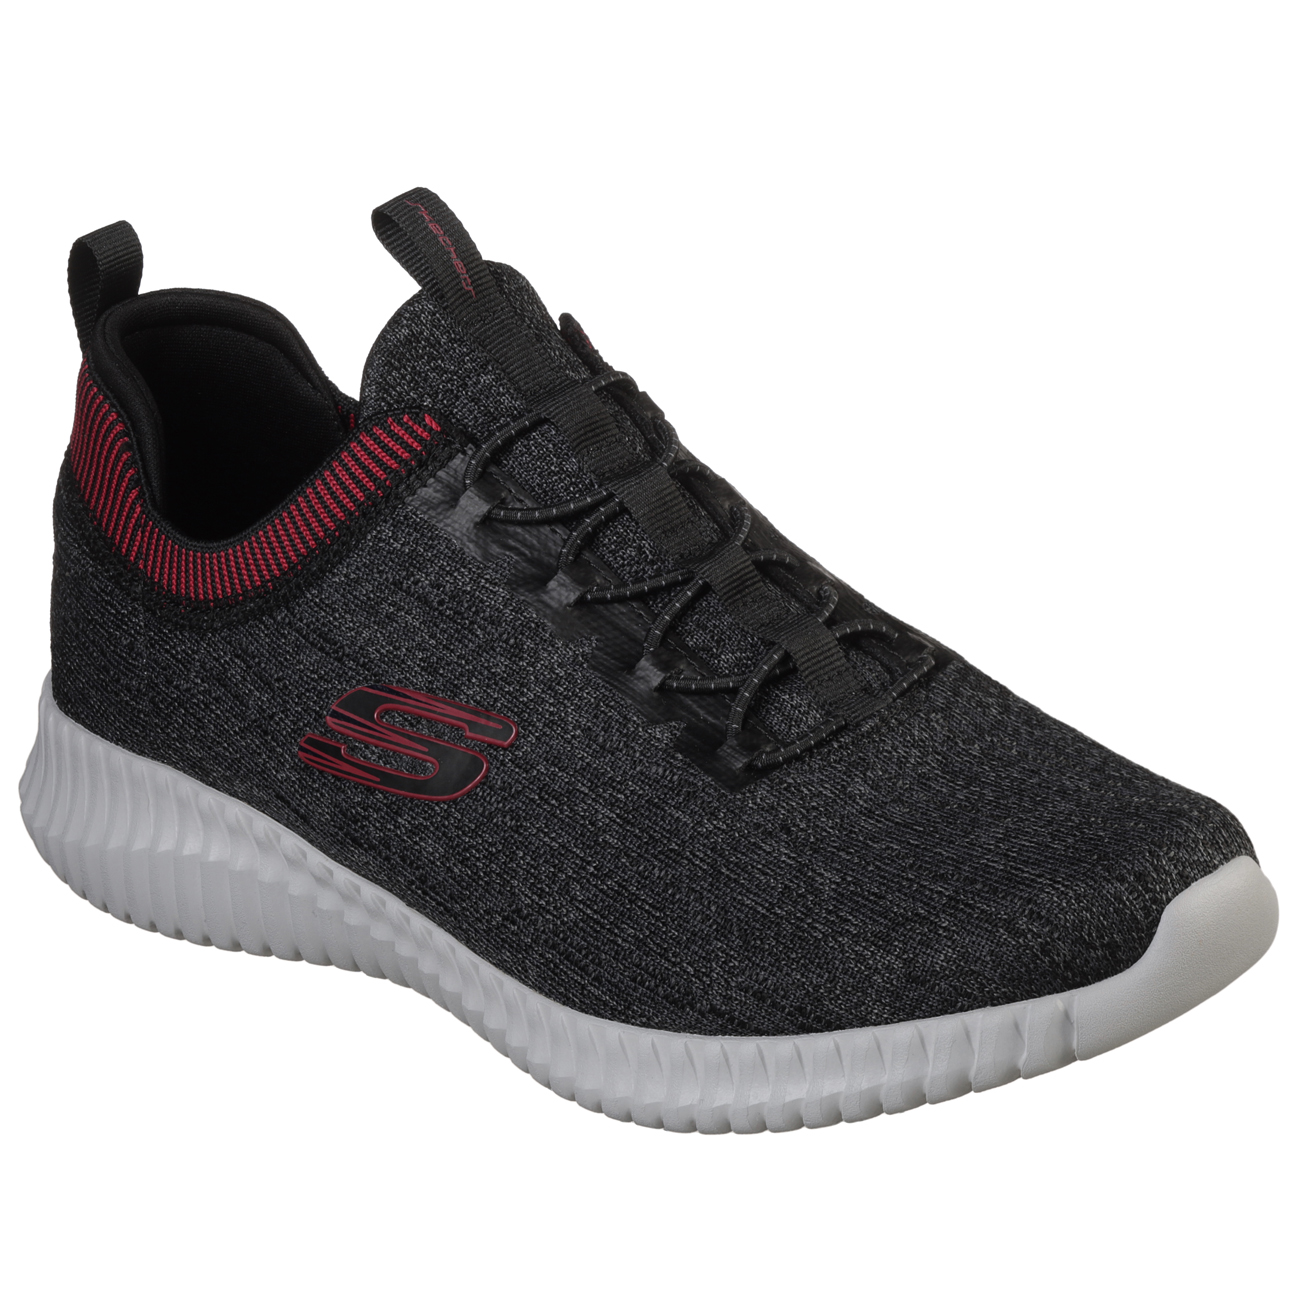 Skechers Elite Flex Hartnell